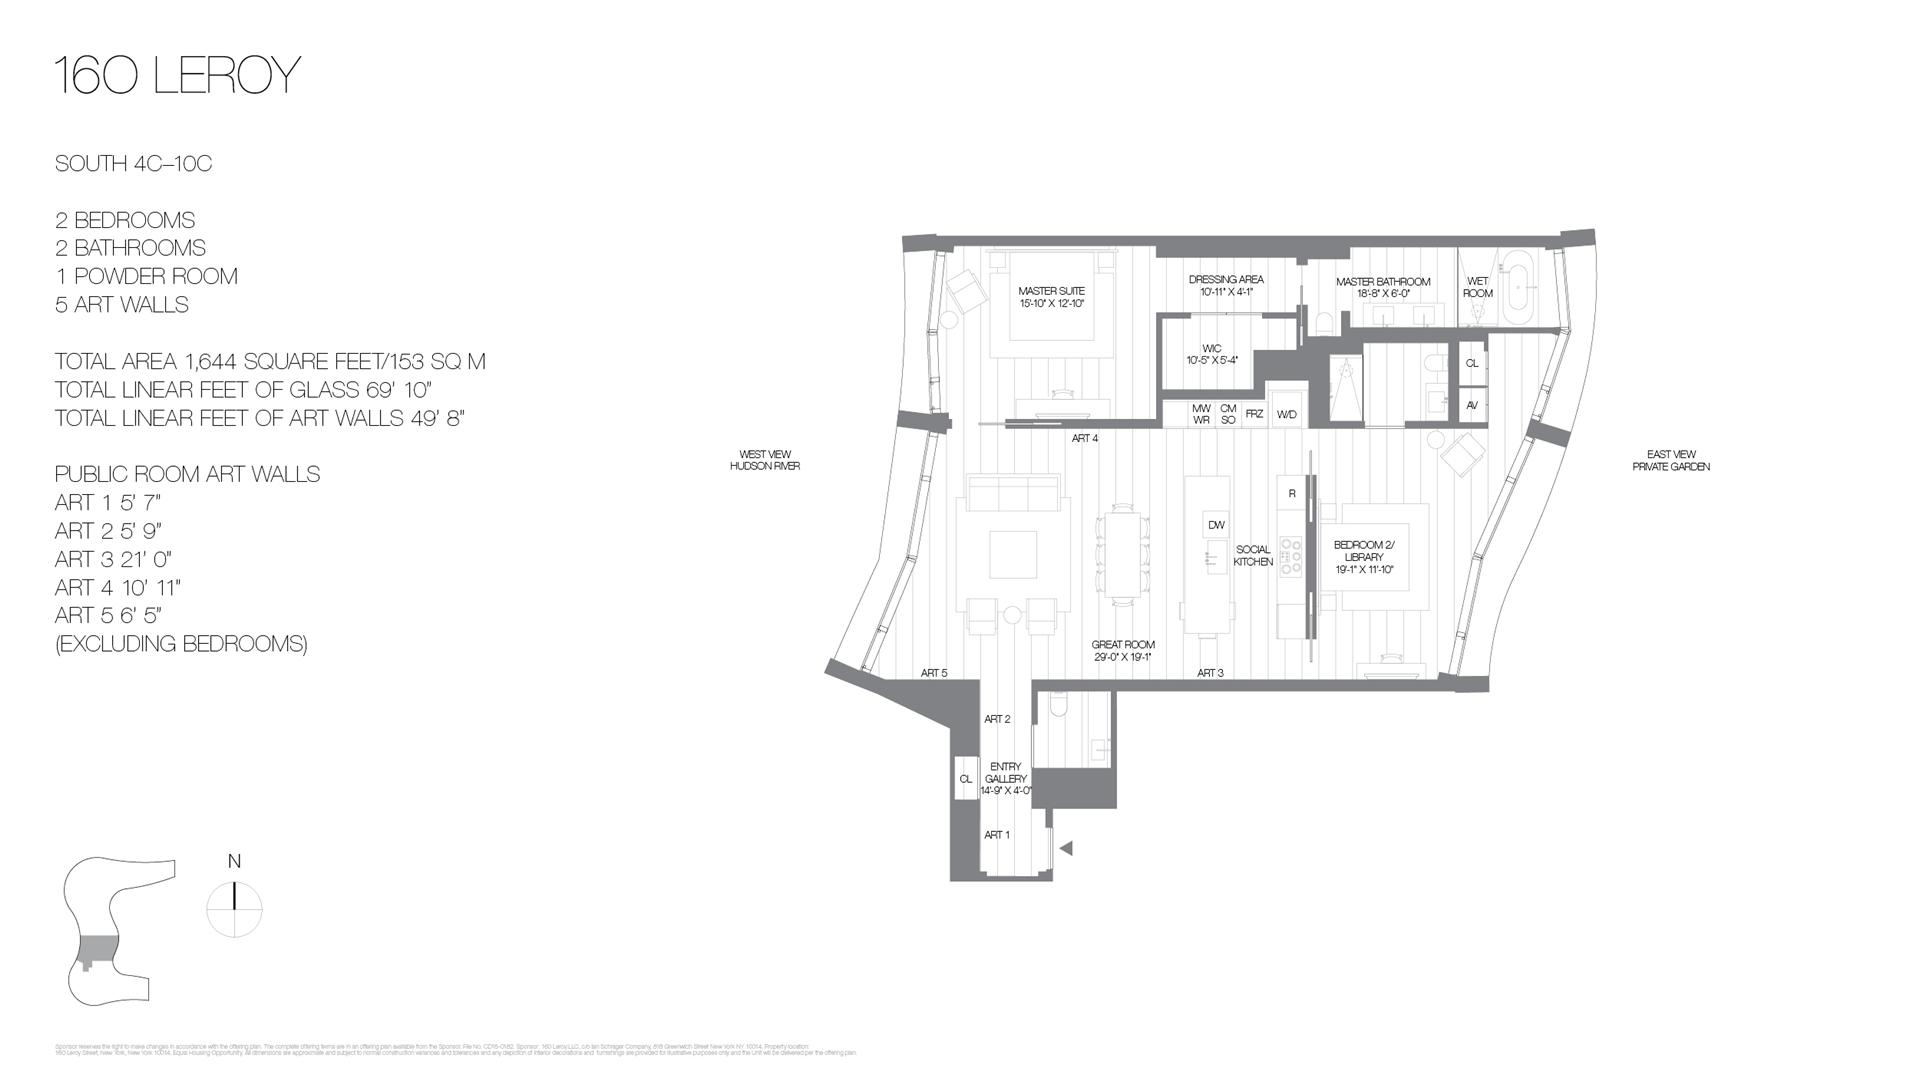 Floor plan of 160 Leroy St, SOUTH9C - West Village - Meatpacking District, New York